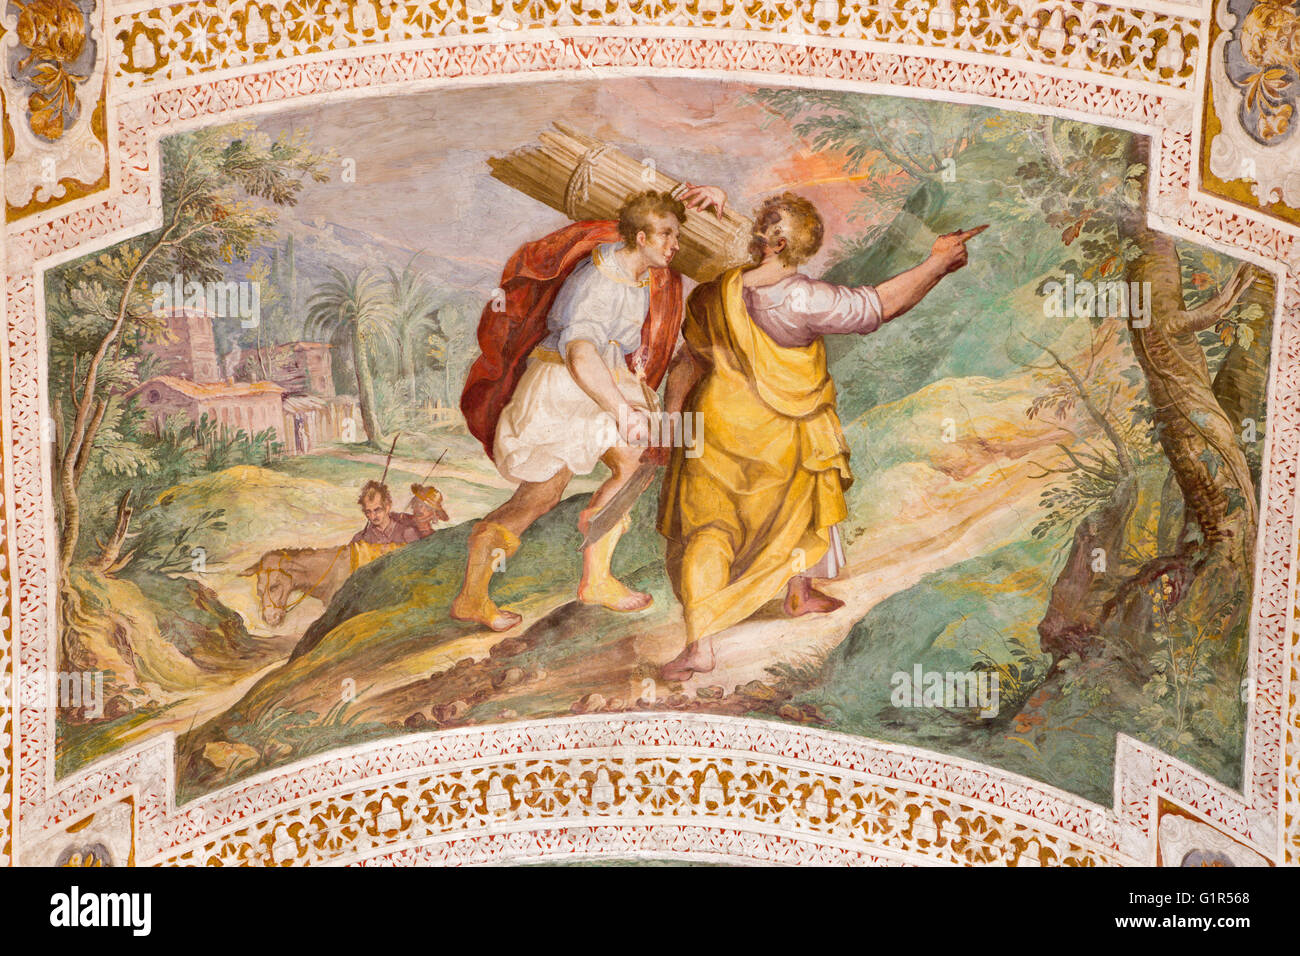 ROME, ITALY - MARCH 11, 2016: The Abraham and Isaac Going to the Sacrifice by P. Bril, and A. Viviani (1560–1620). - Stock Image